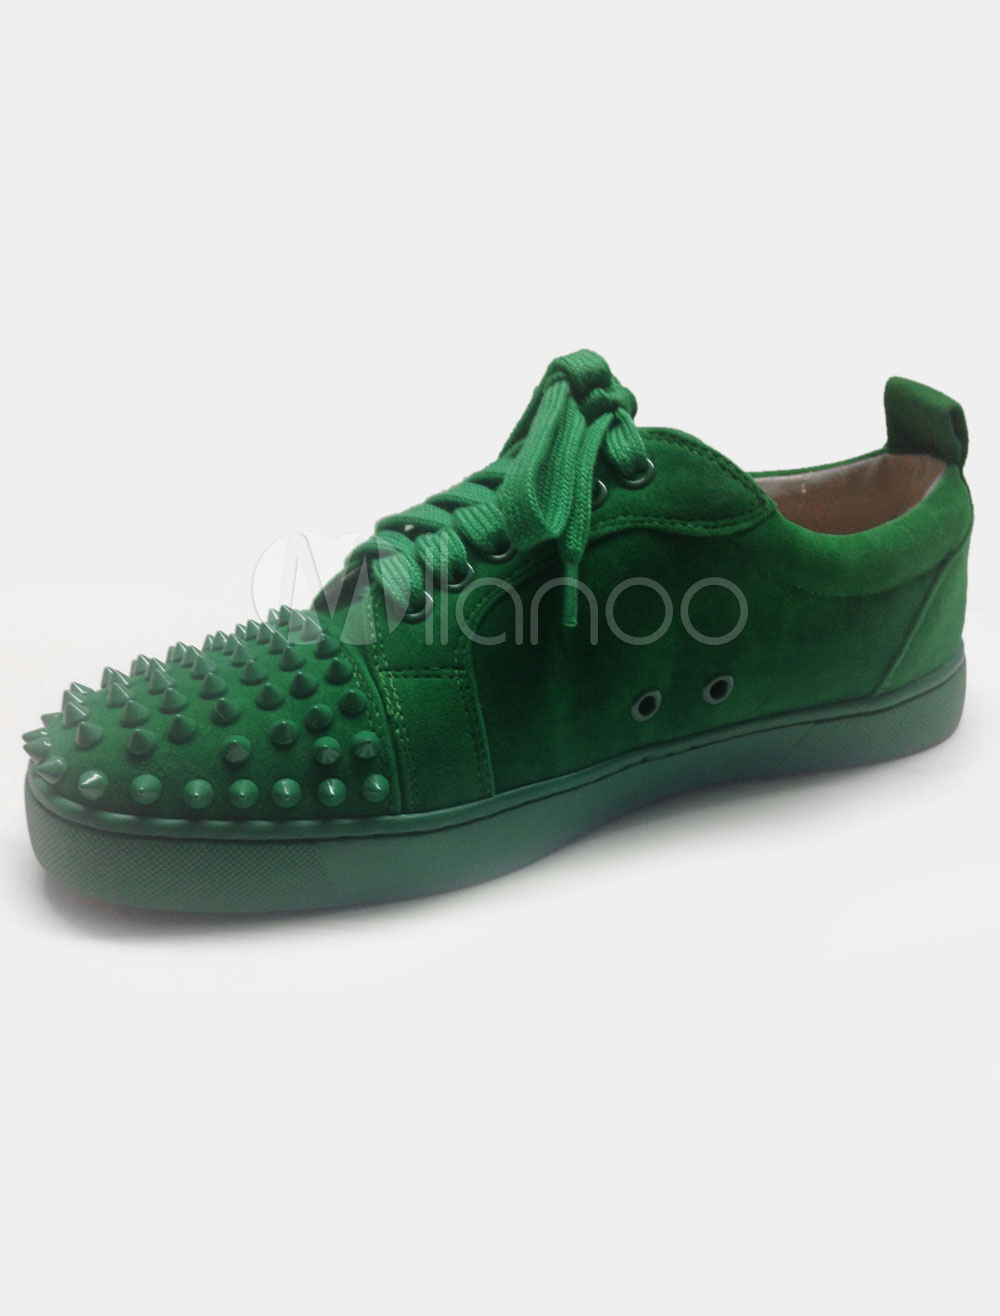 Rivets Sneakers Green Lace Up Leather Shoes for Men